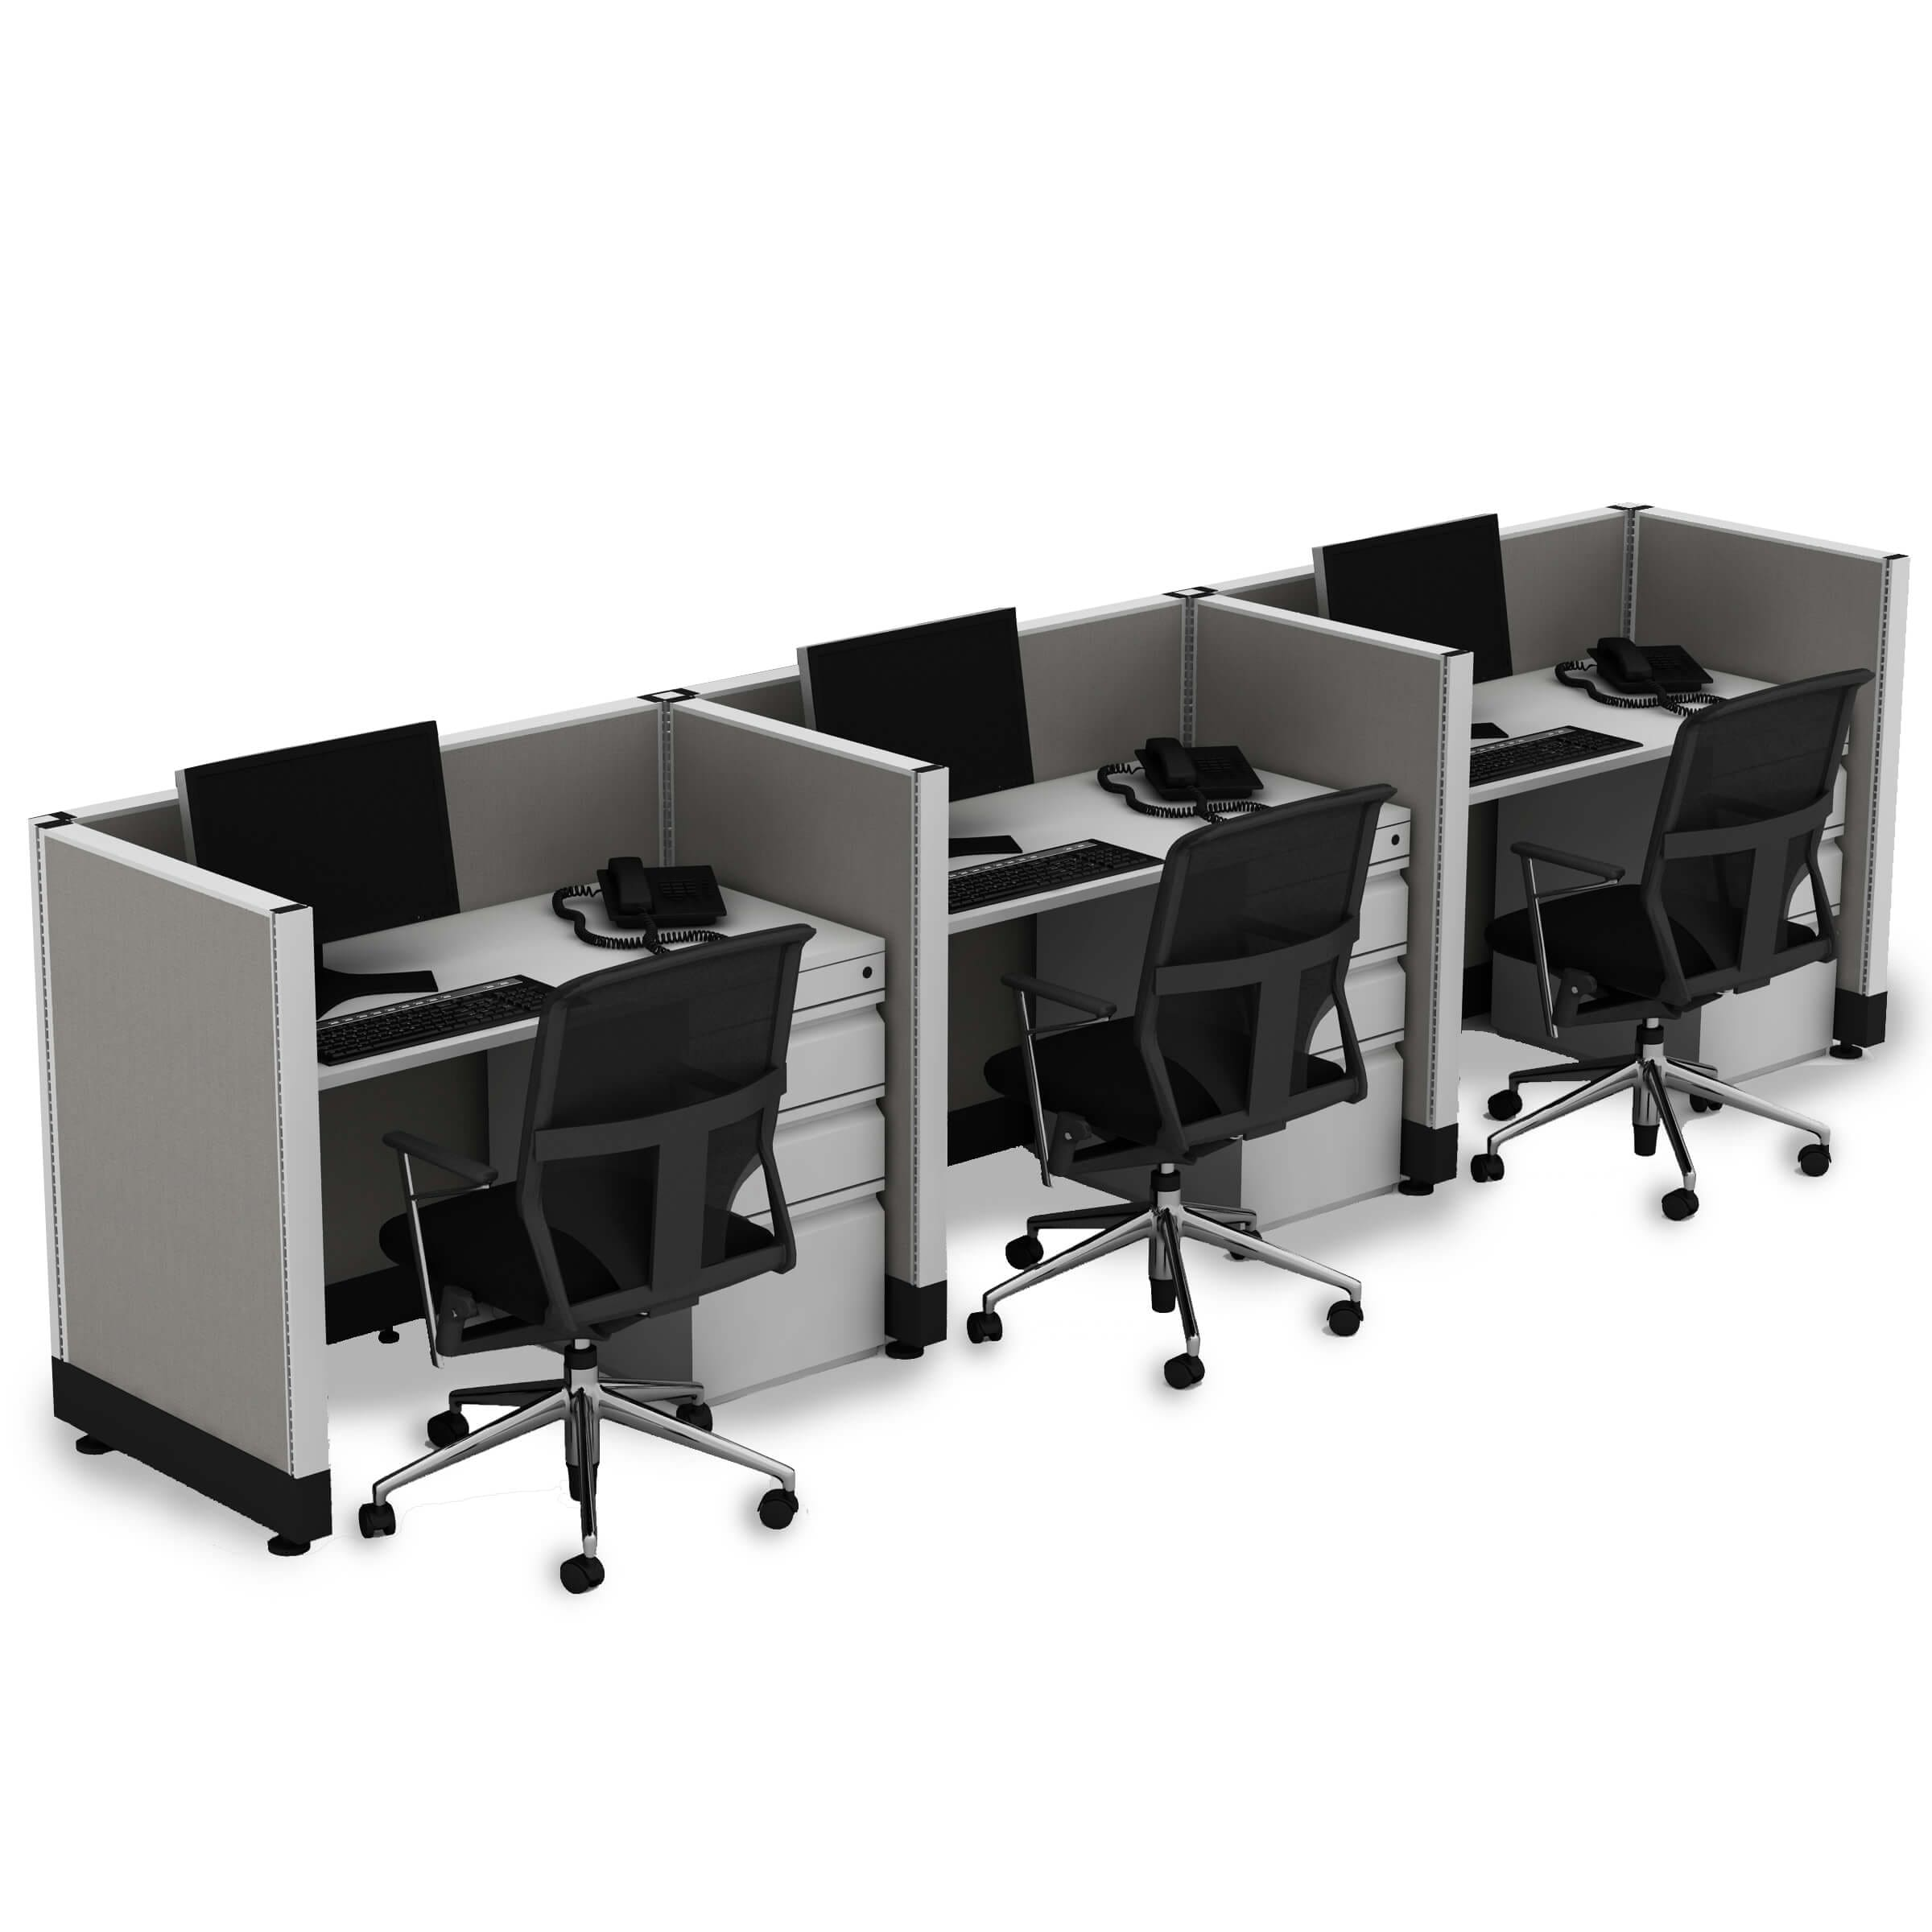 Small Office Cubicles 39H 3pack Inline Unpowered (2x4 - Espresso Desk White Paint - Assembled)